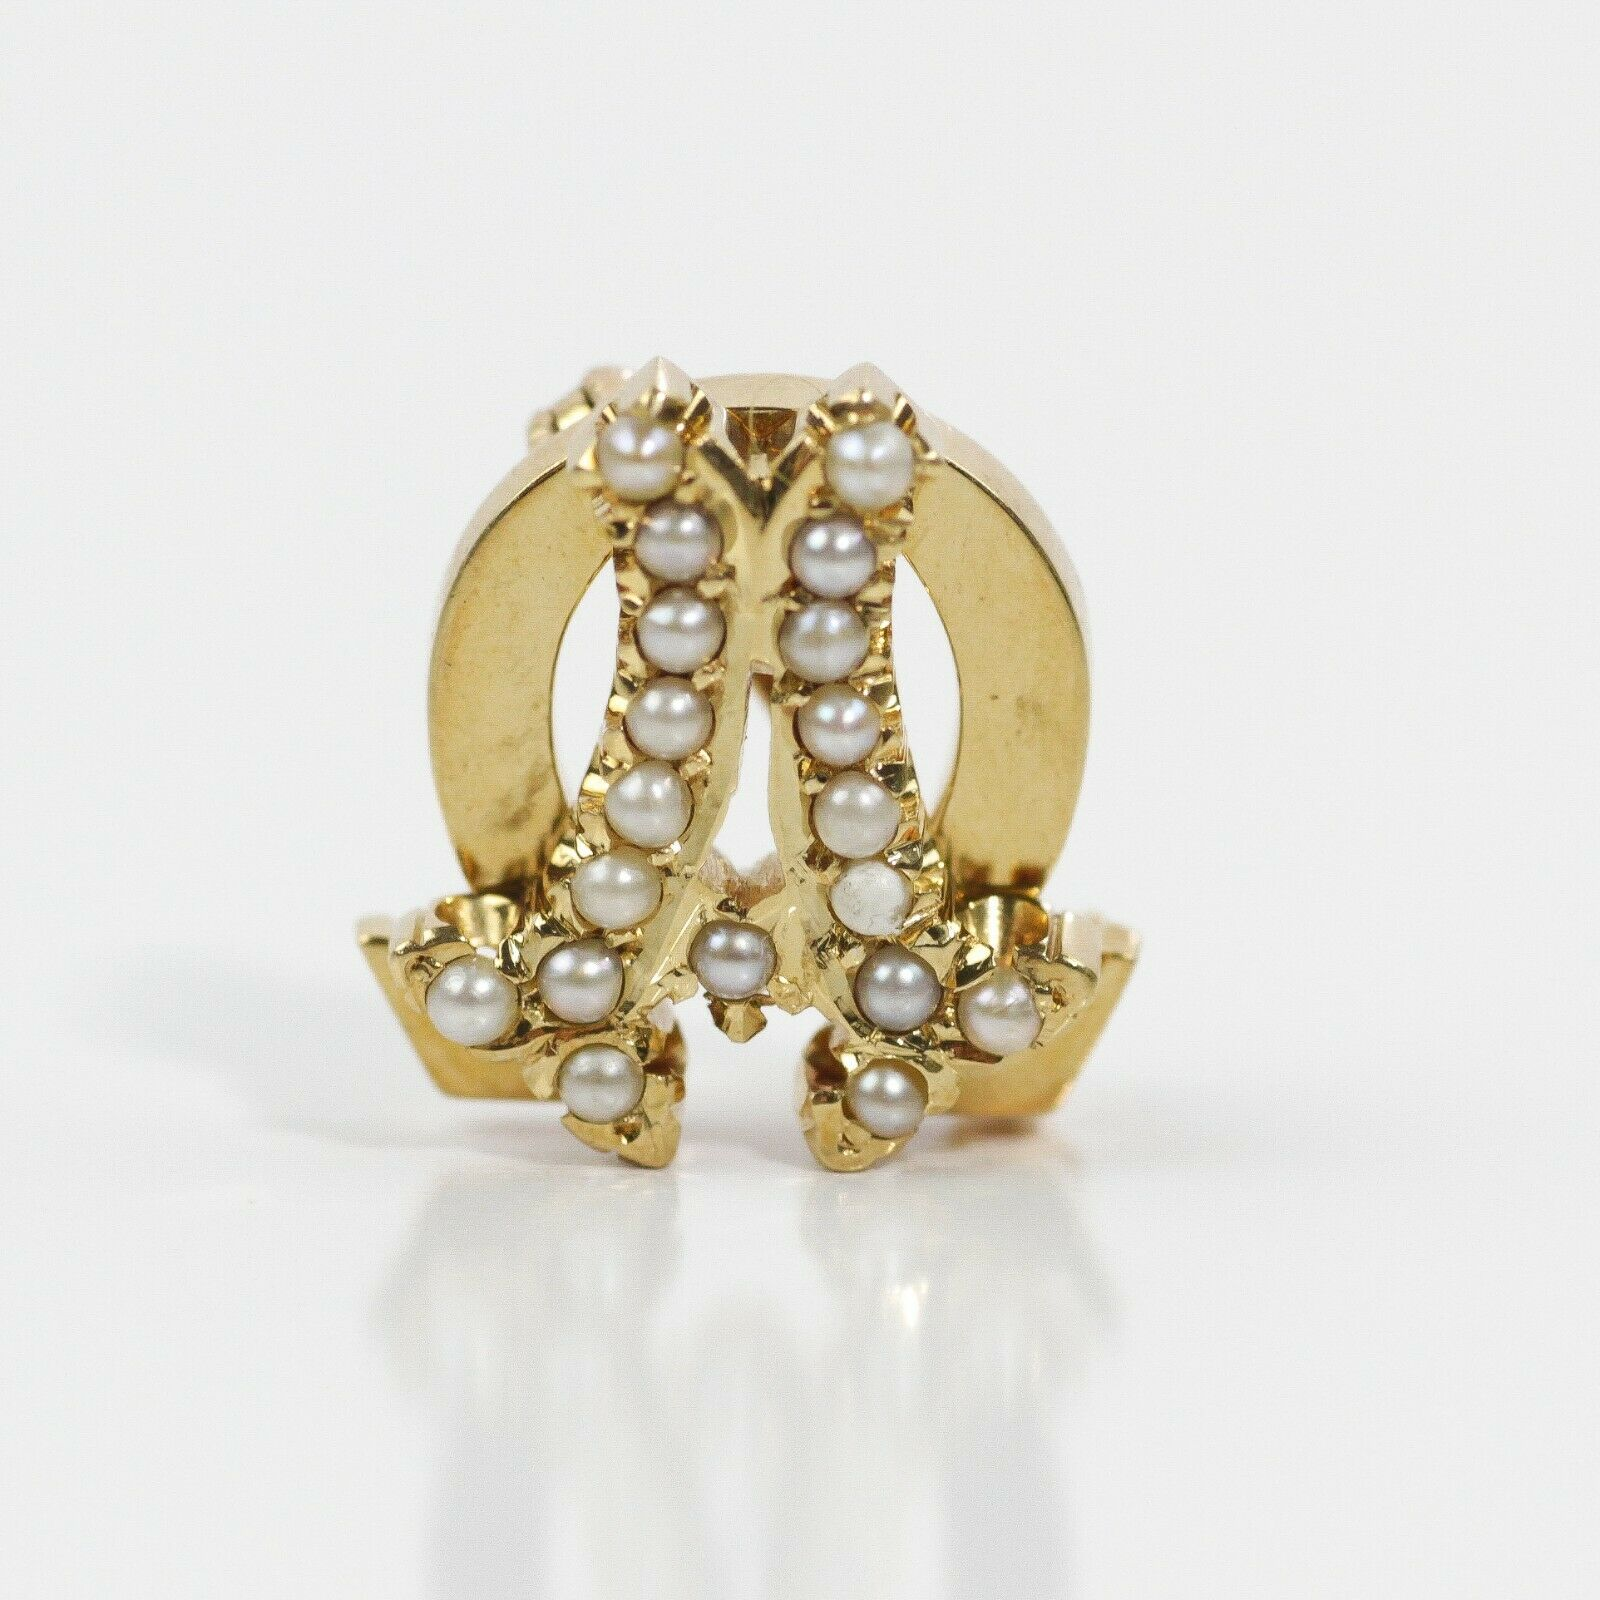 5cf021c247fe ADORABLE 14k YELLOW gold HORSESHOE BROOCH INITIAL A DECORATED WITH PEARLS  nvblmt6857-Pins